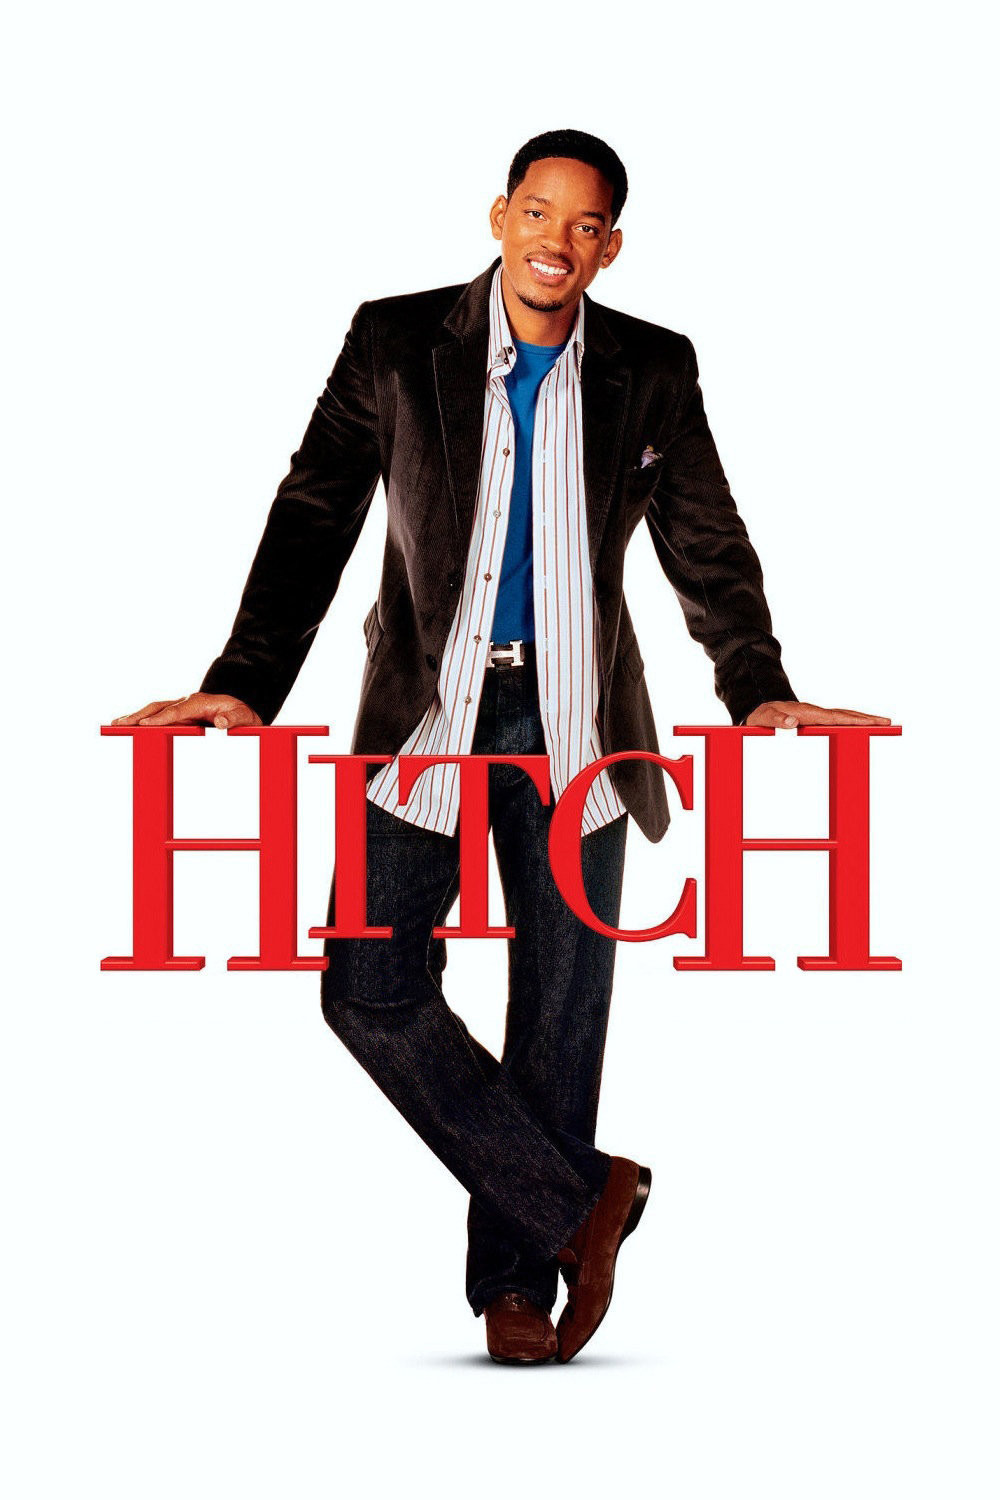 interpersonal communicaton the movie hitch Hitch interpersonal-communication alex hitchens is a professional date doctor, or consultant as hitch terms himself, who coaches other men in the art of having the perfect date with the woman of their dreams.